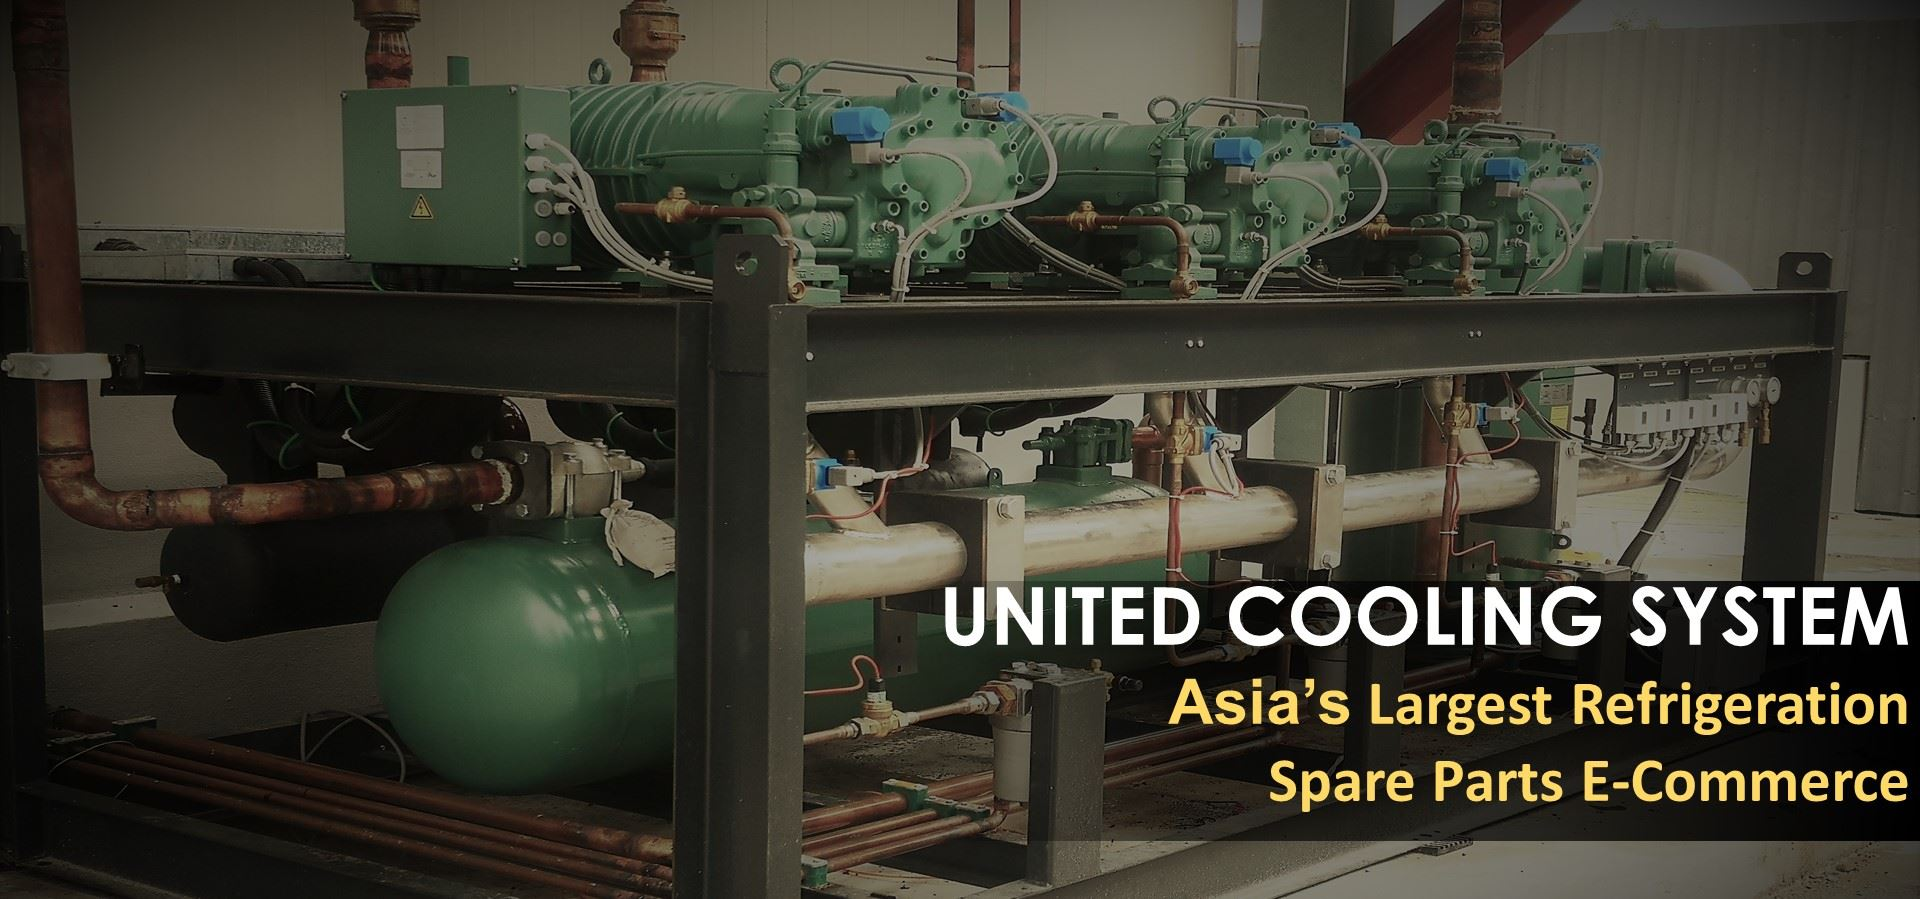 UNITED COOLING SYSTEM